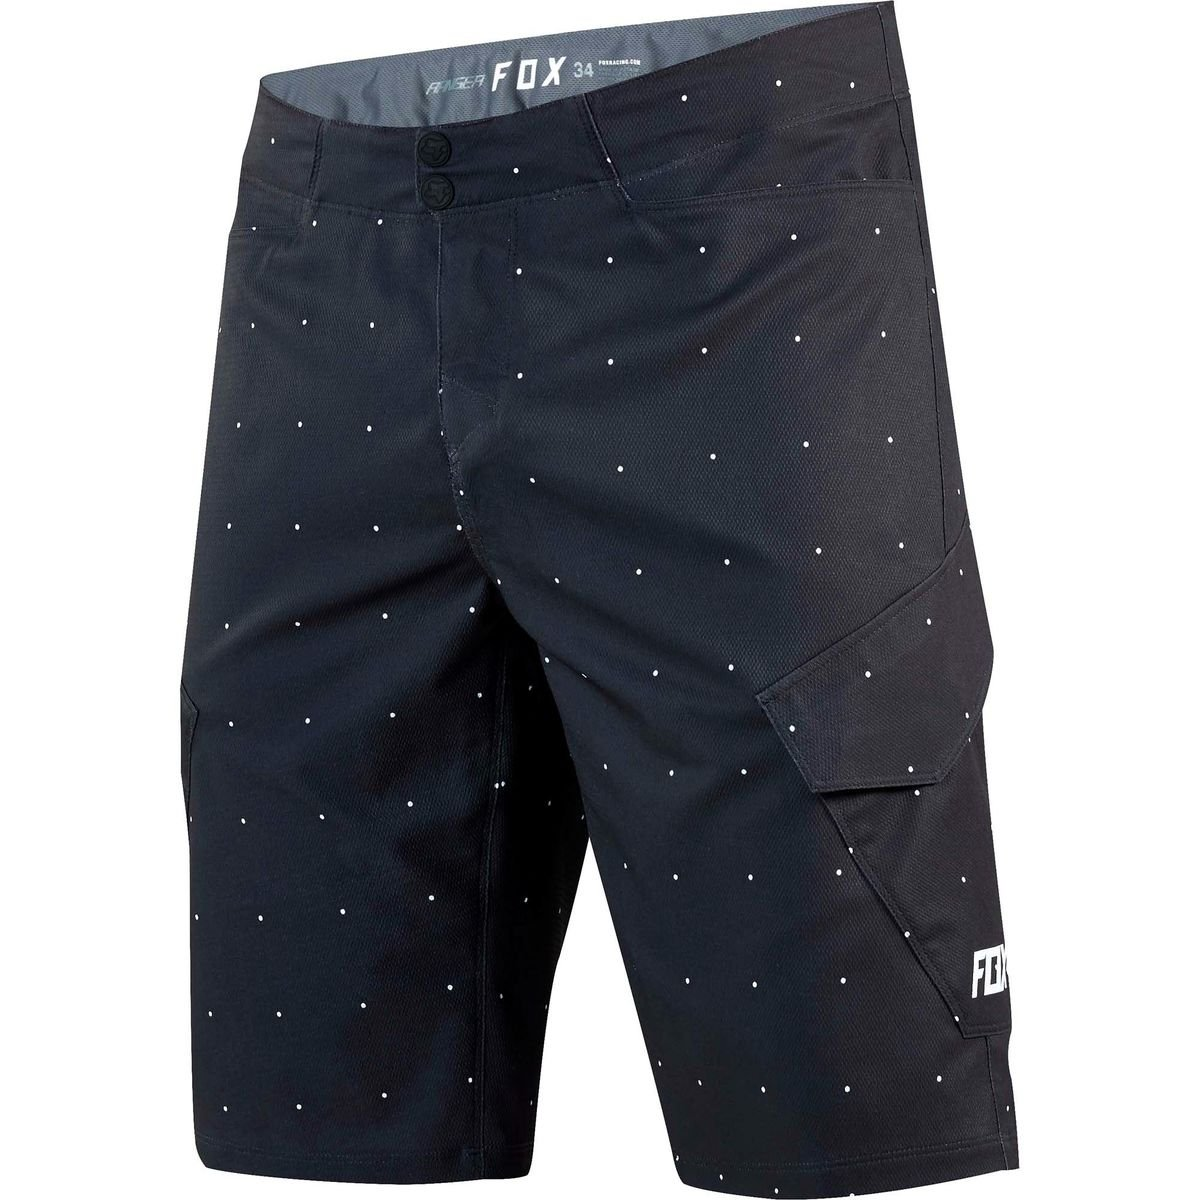 Fox Racing Ranger Cargo Print Short - Men's Black Dots, 36